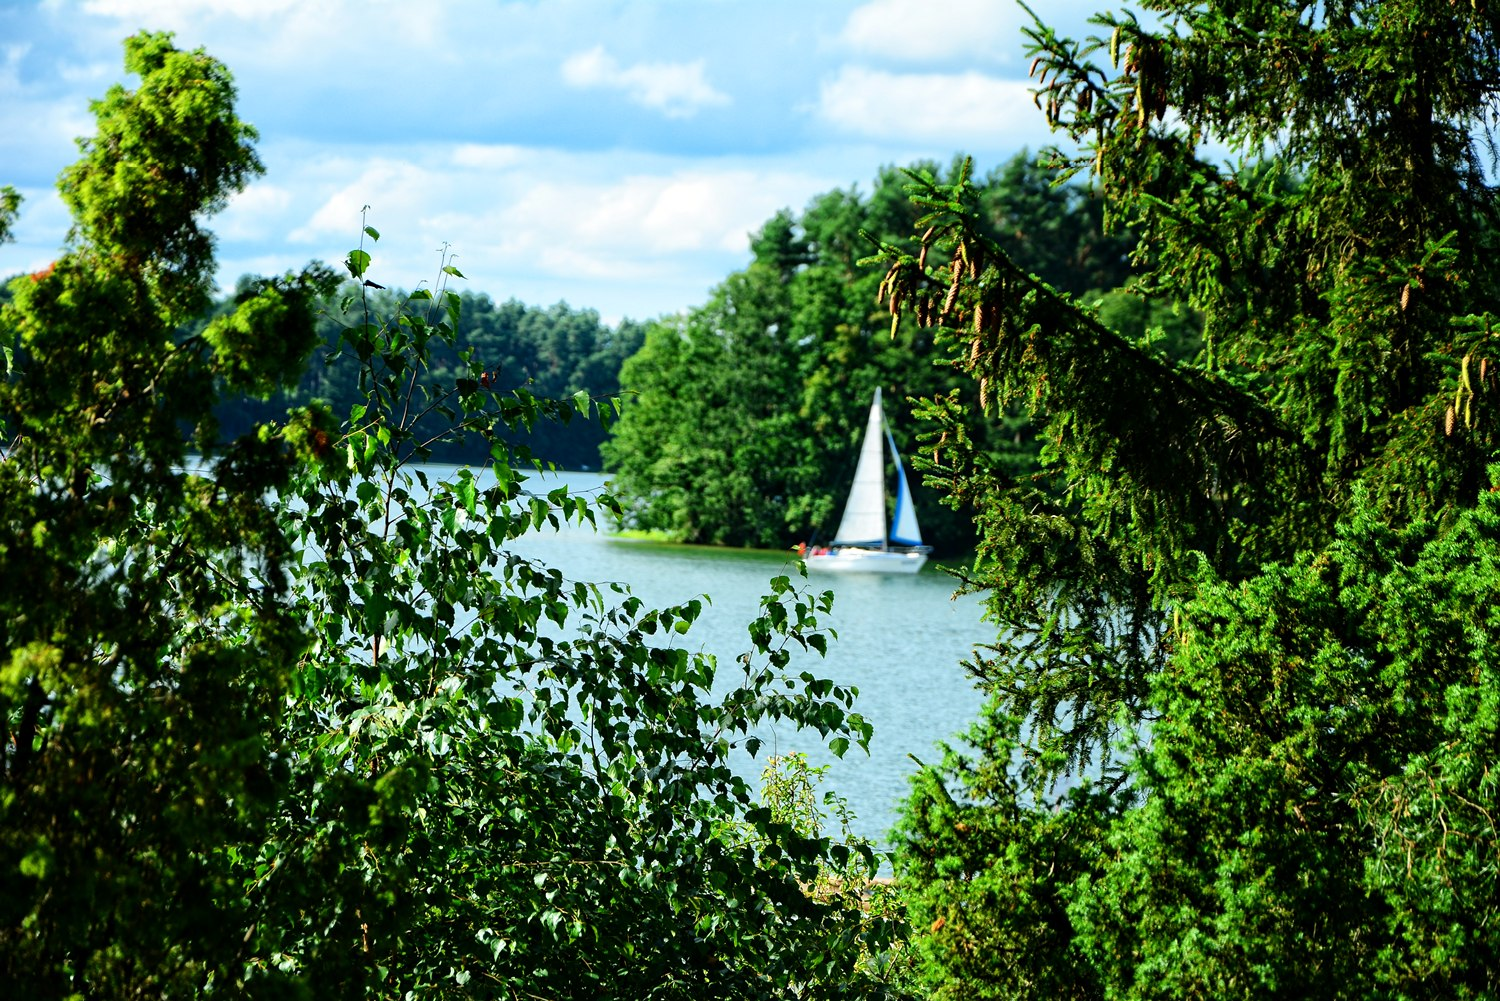 Sailing in Mazury what to do in north eastern poland